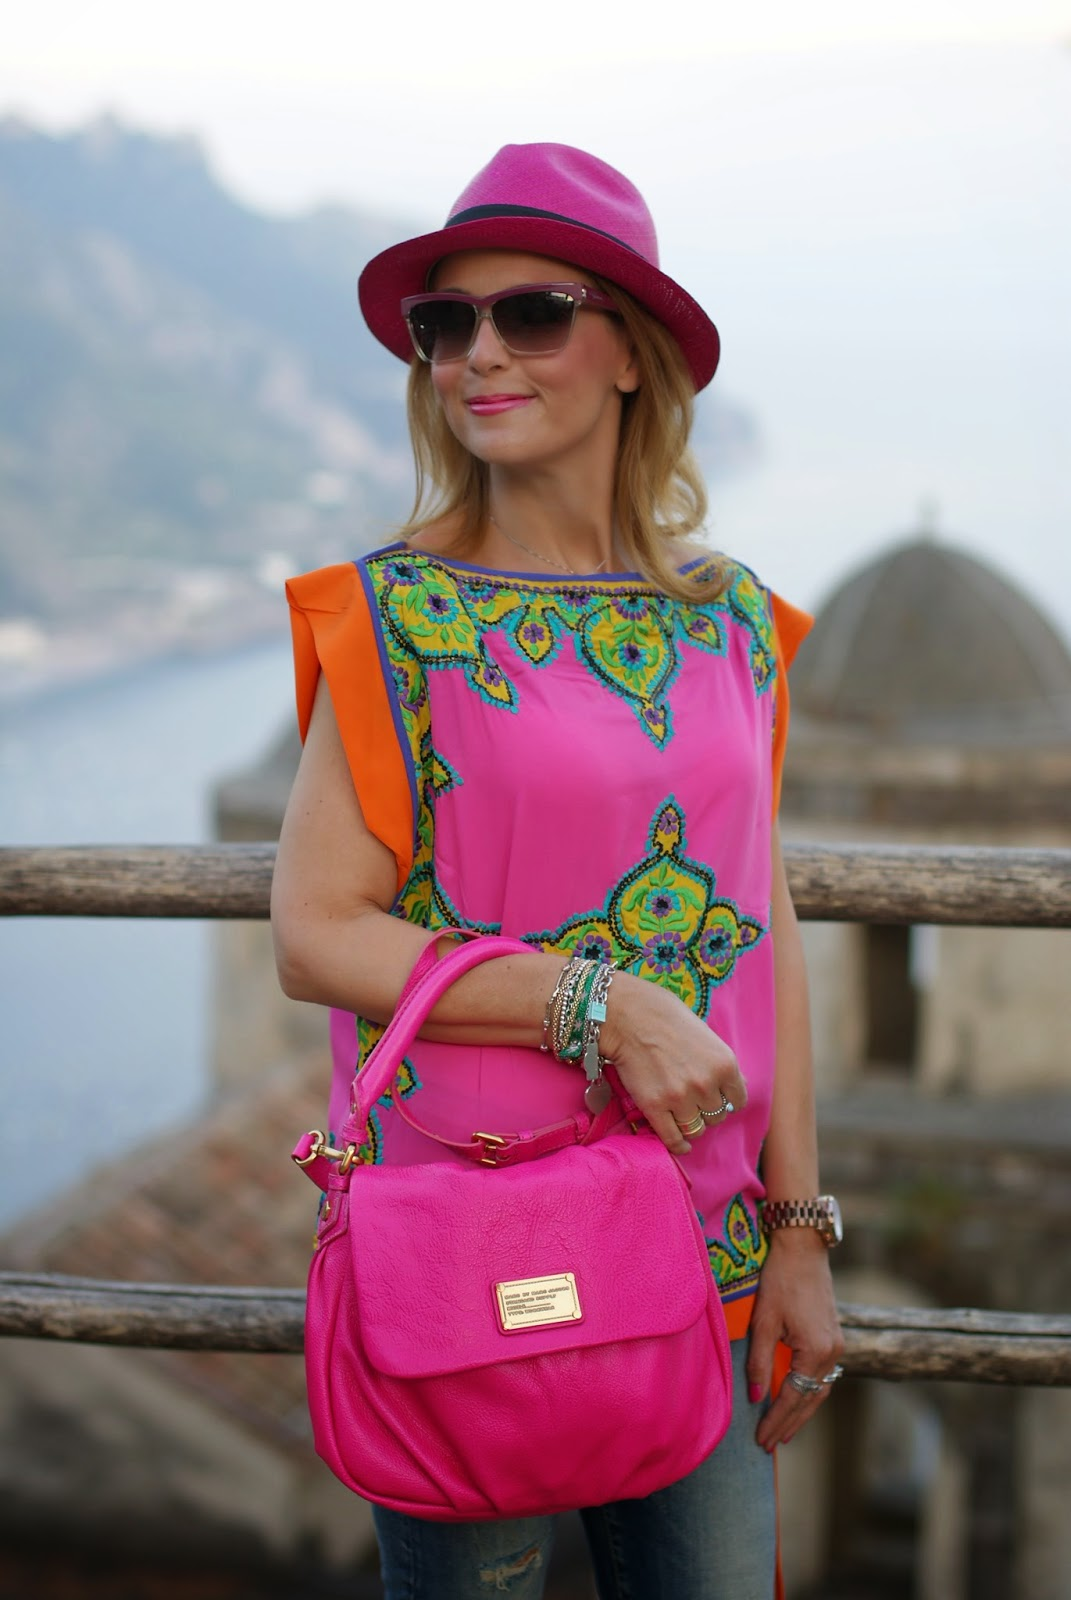 Preeti S Kapoor top, Marc by Marc Jacobs Little Ukita bag, Roberto Cavalli sunglasses, Ecua-Andino hat, Fashion and Cookies, fashion blogger